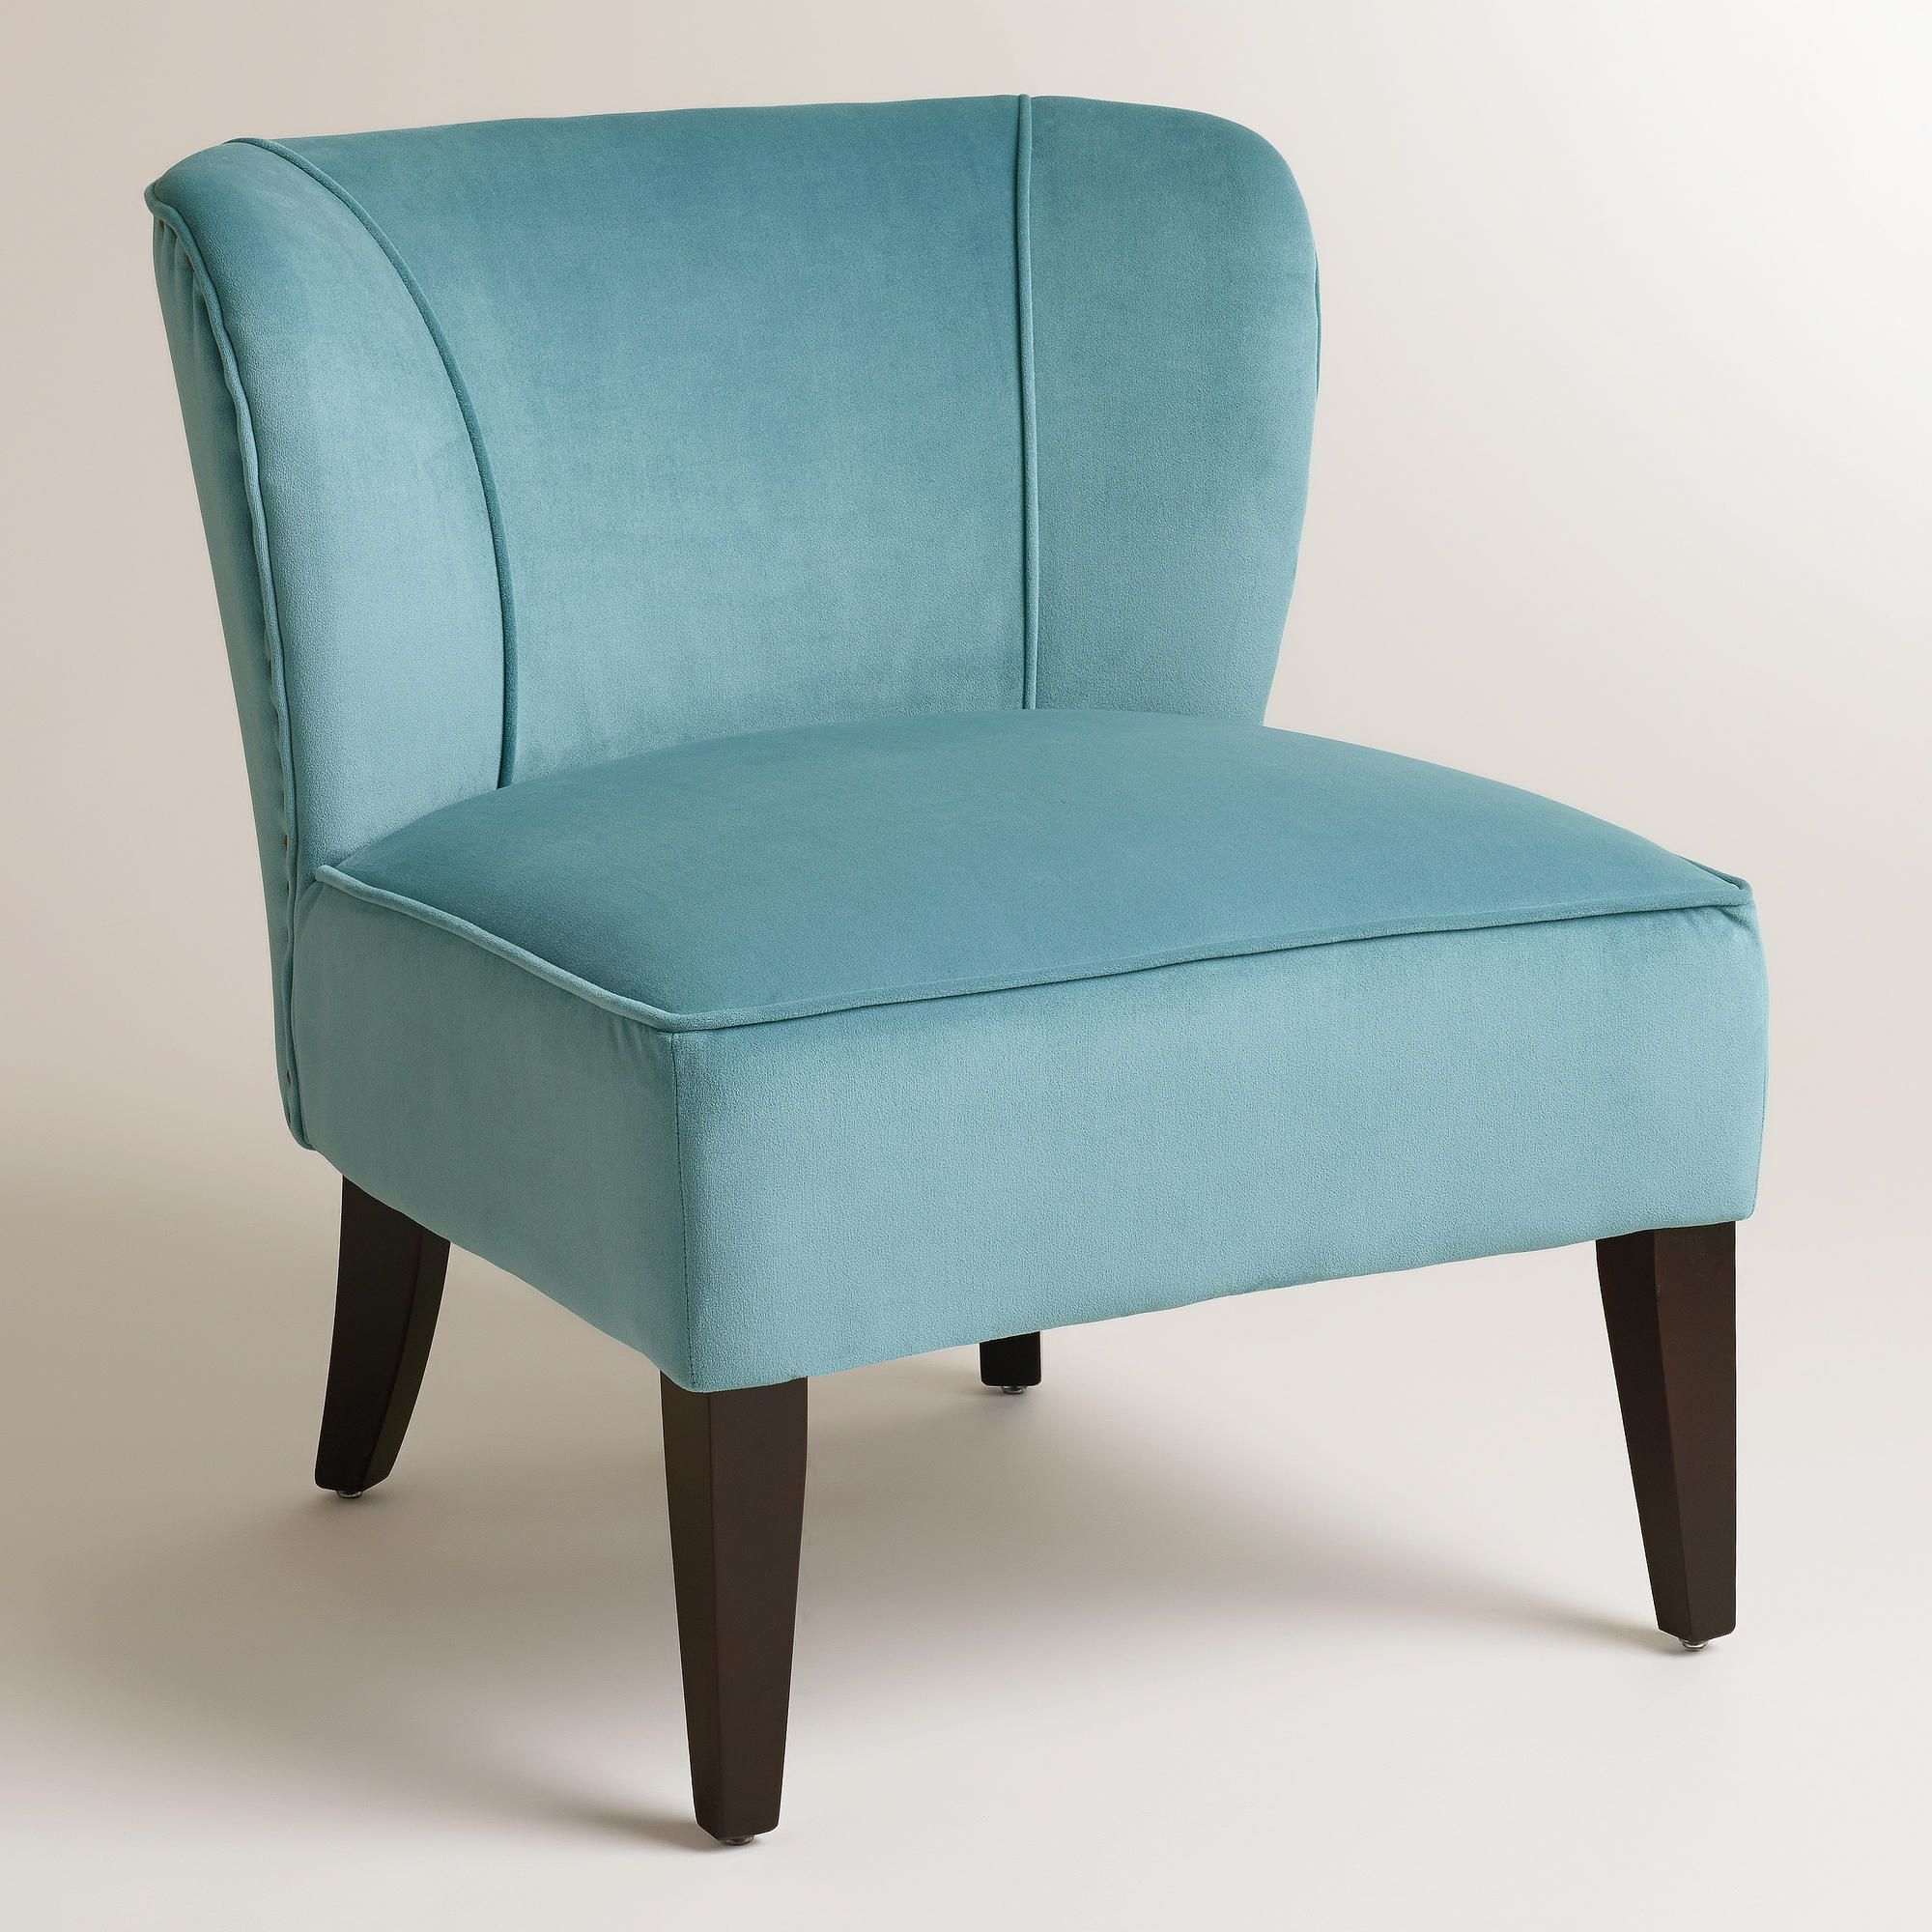 Caribbean Blue Quincy Chair Accent Chairs For Living Room